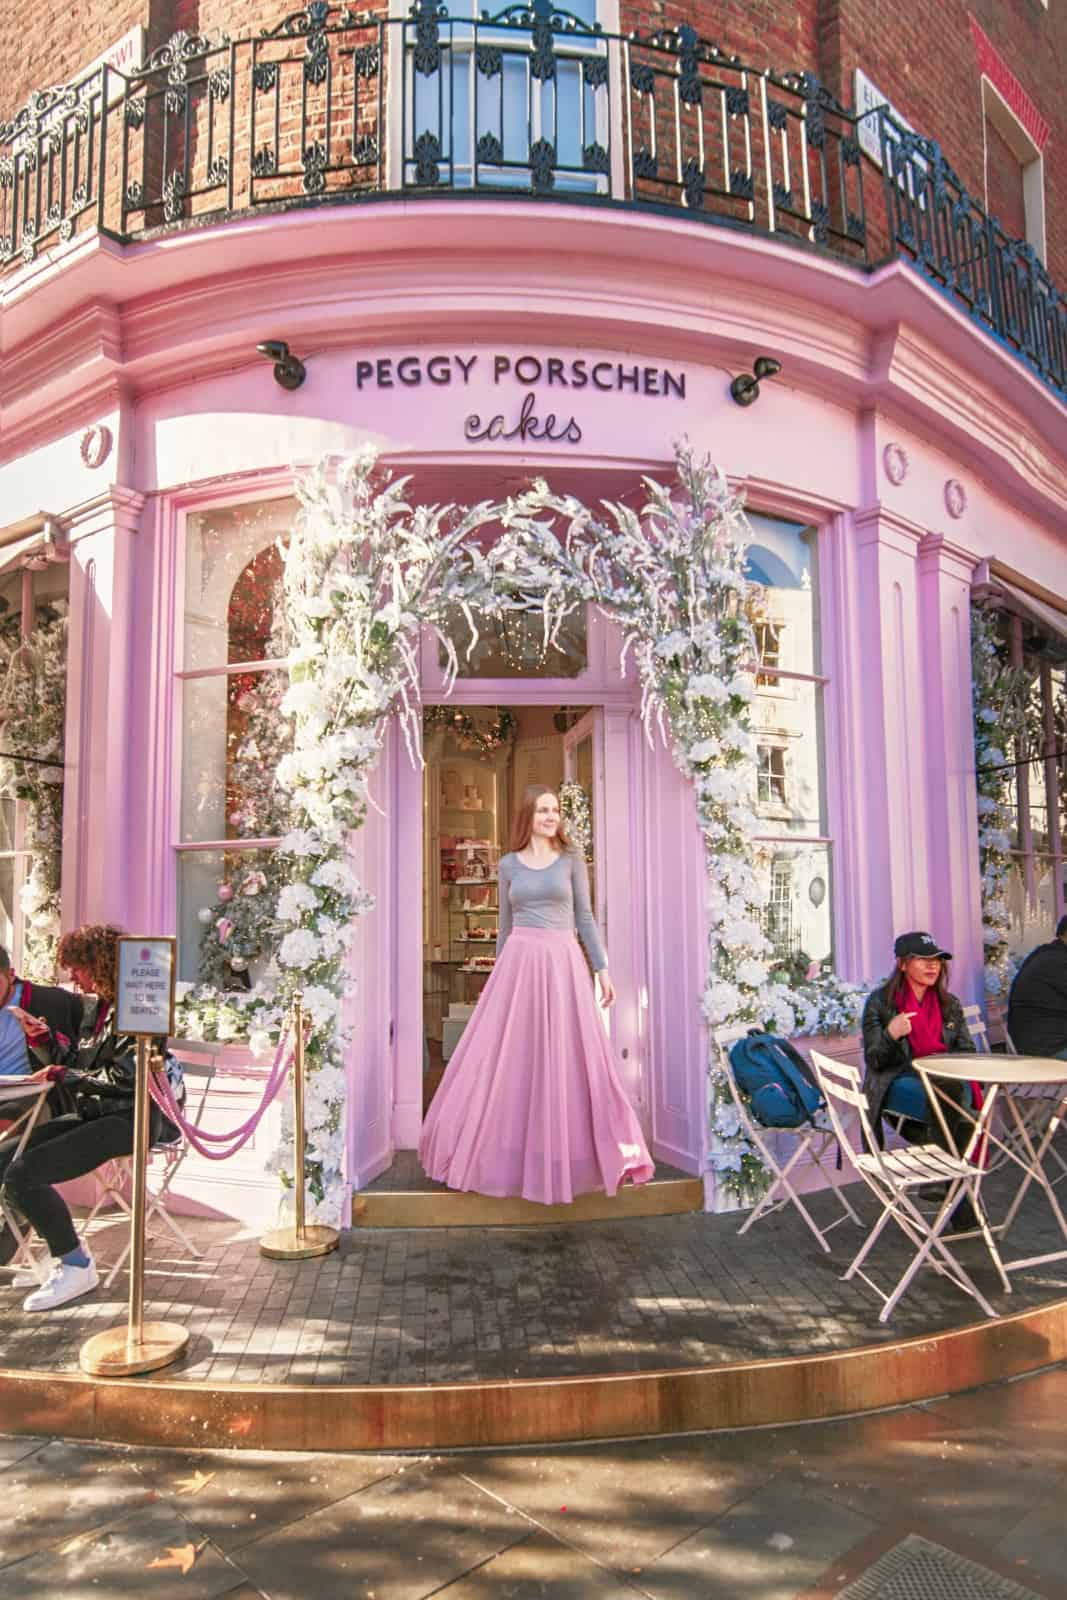 Peggy Porschen Cakes is one of the prettiest Instagrammable places in London